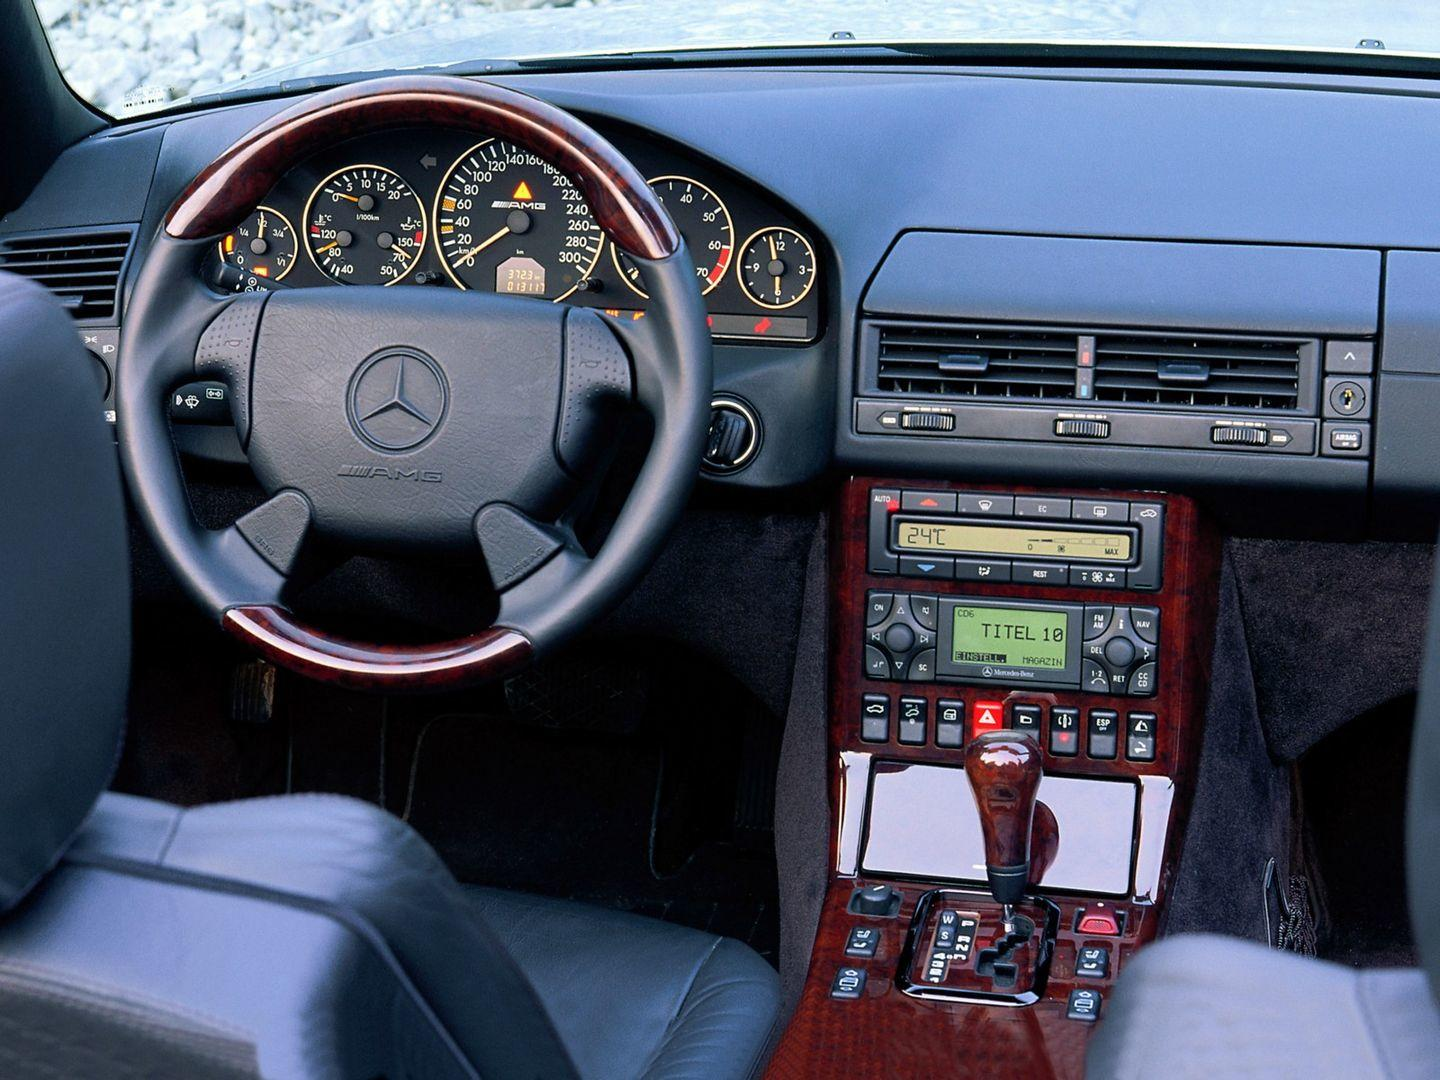 Mercedes-Benz SL 73 AMG, interior